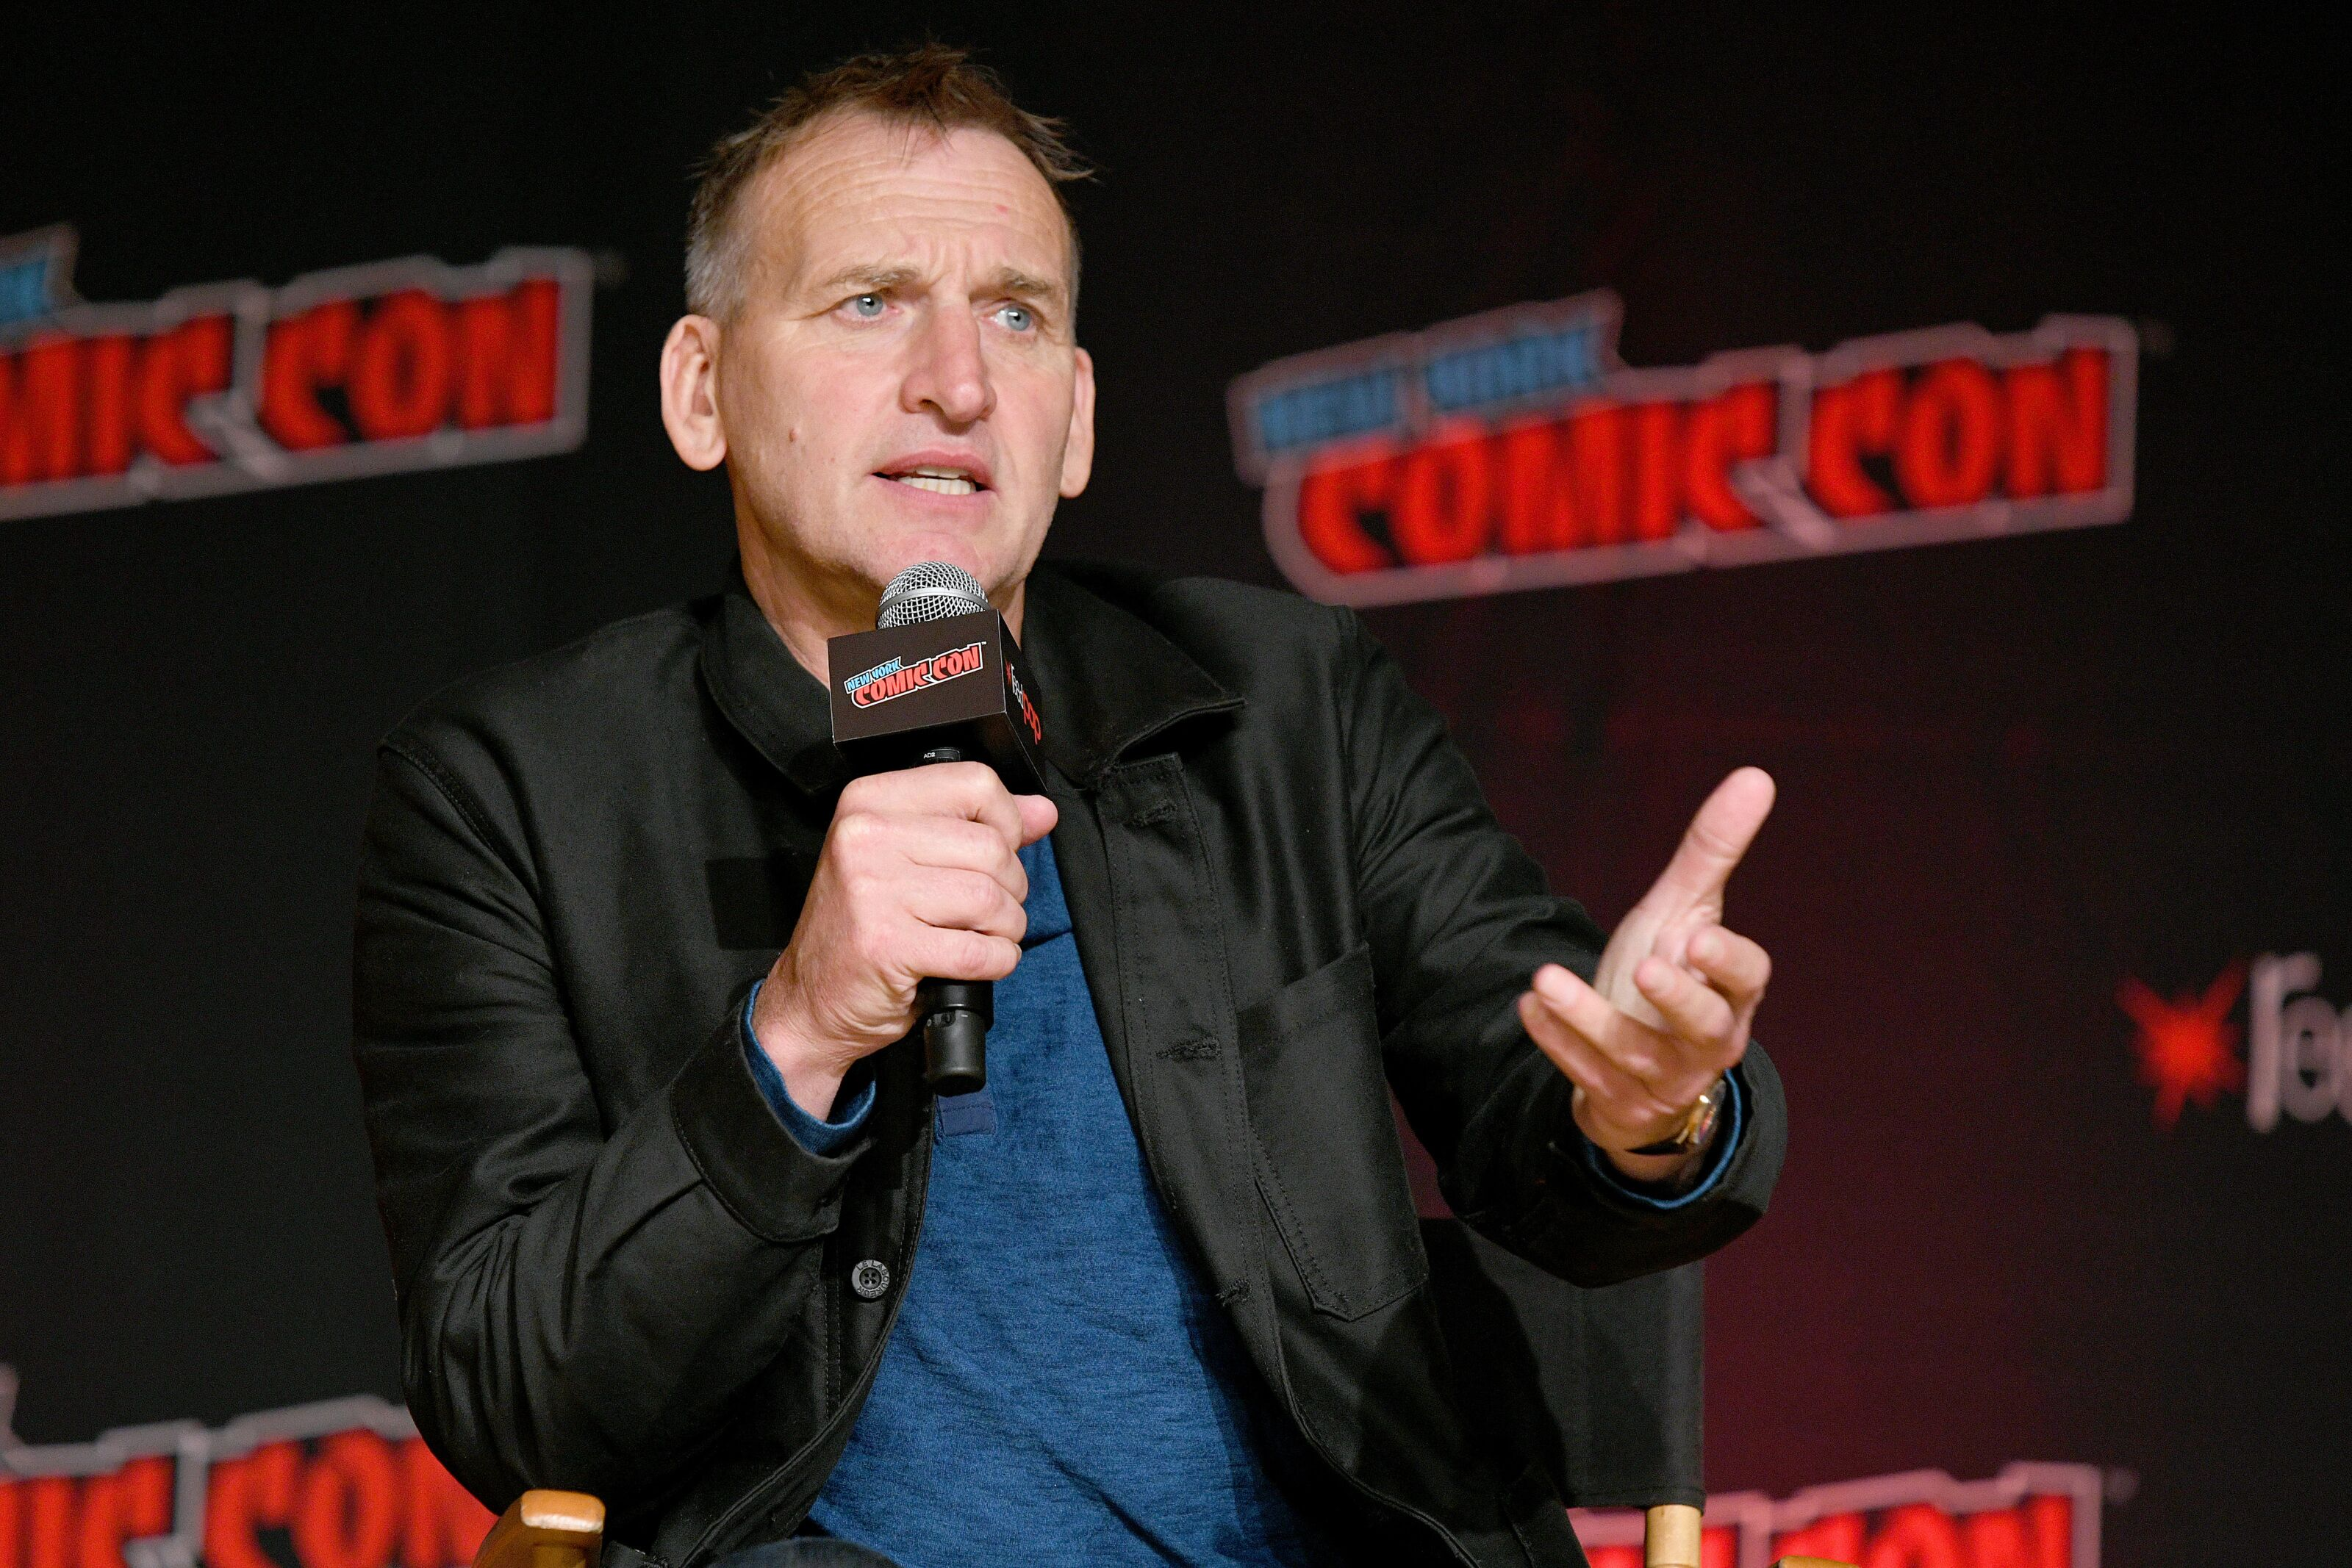 Christoper Eccleston opens up about why he left Doctor Who